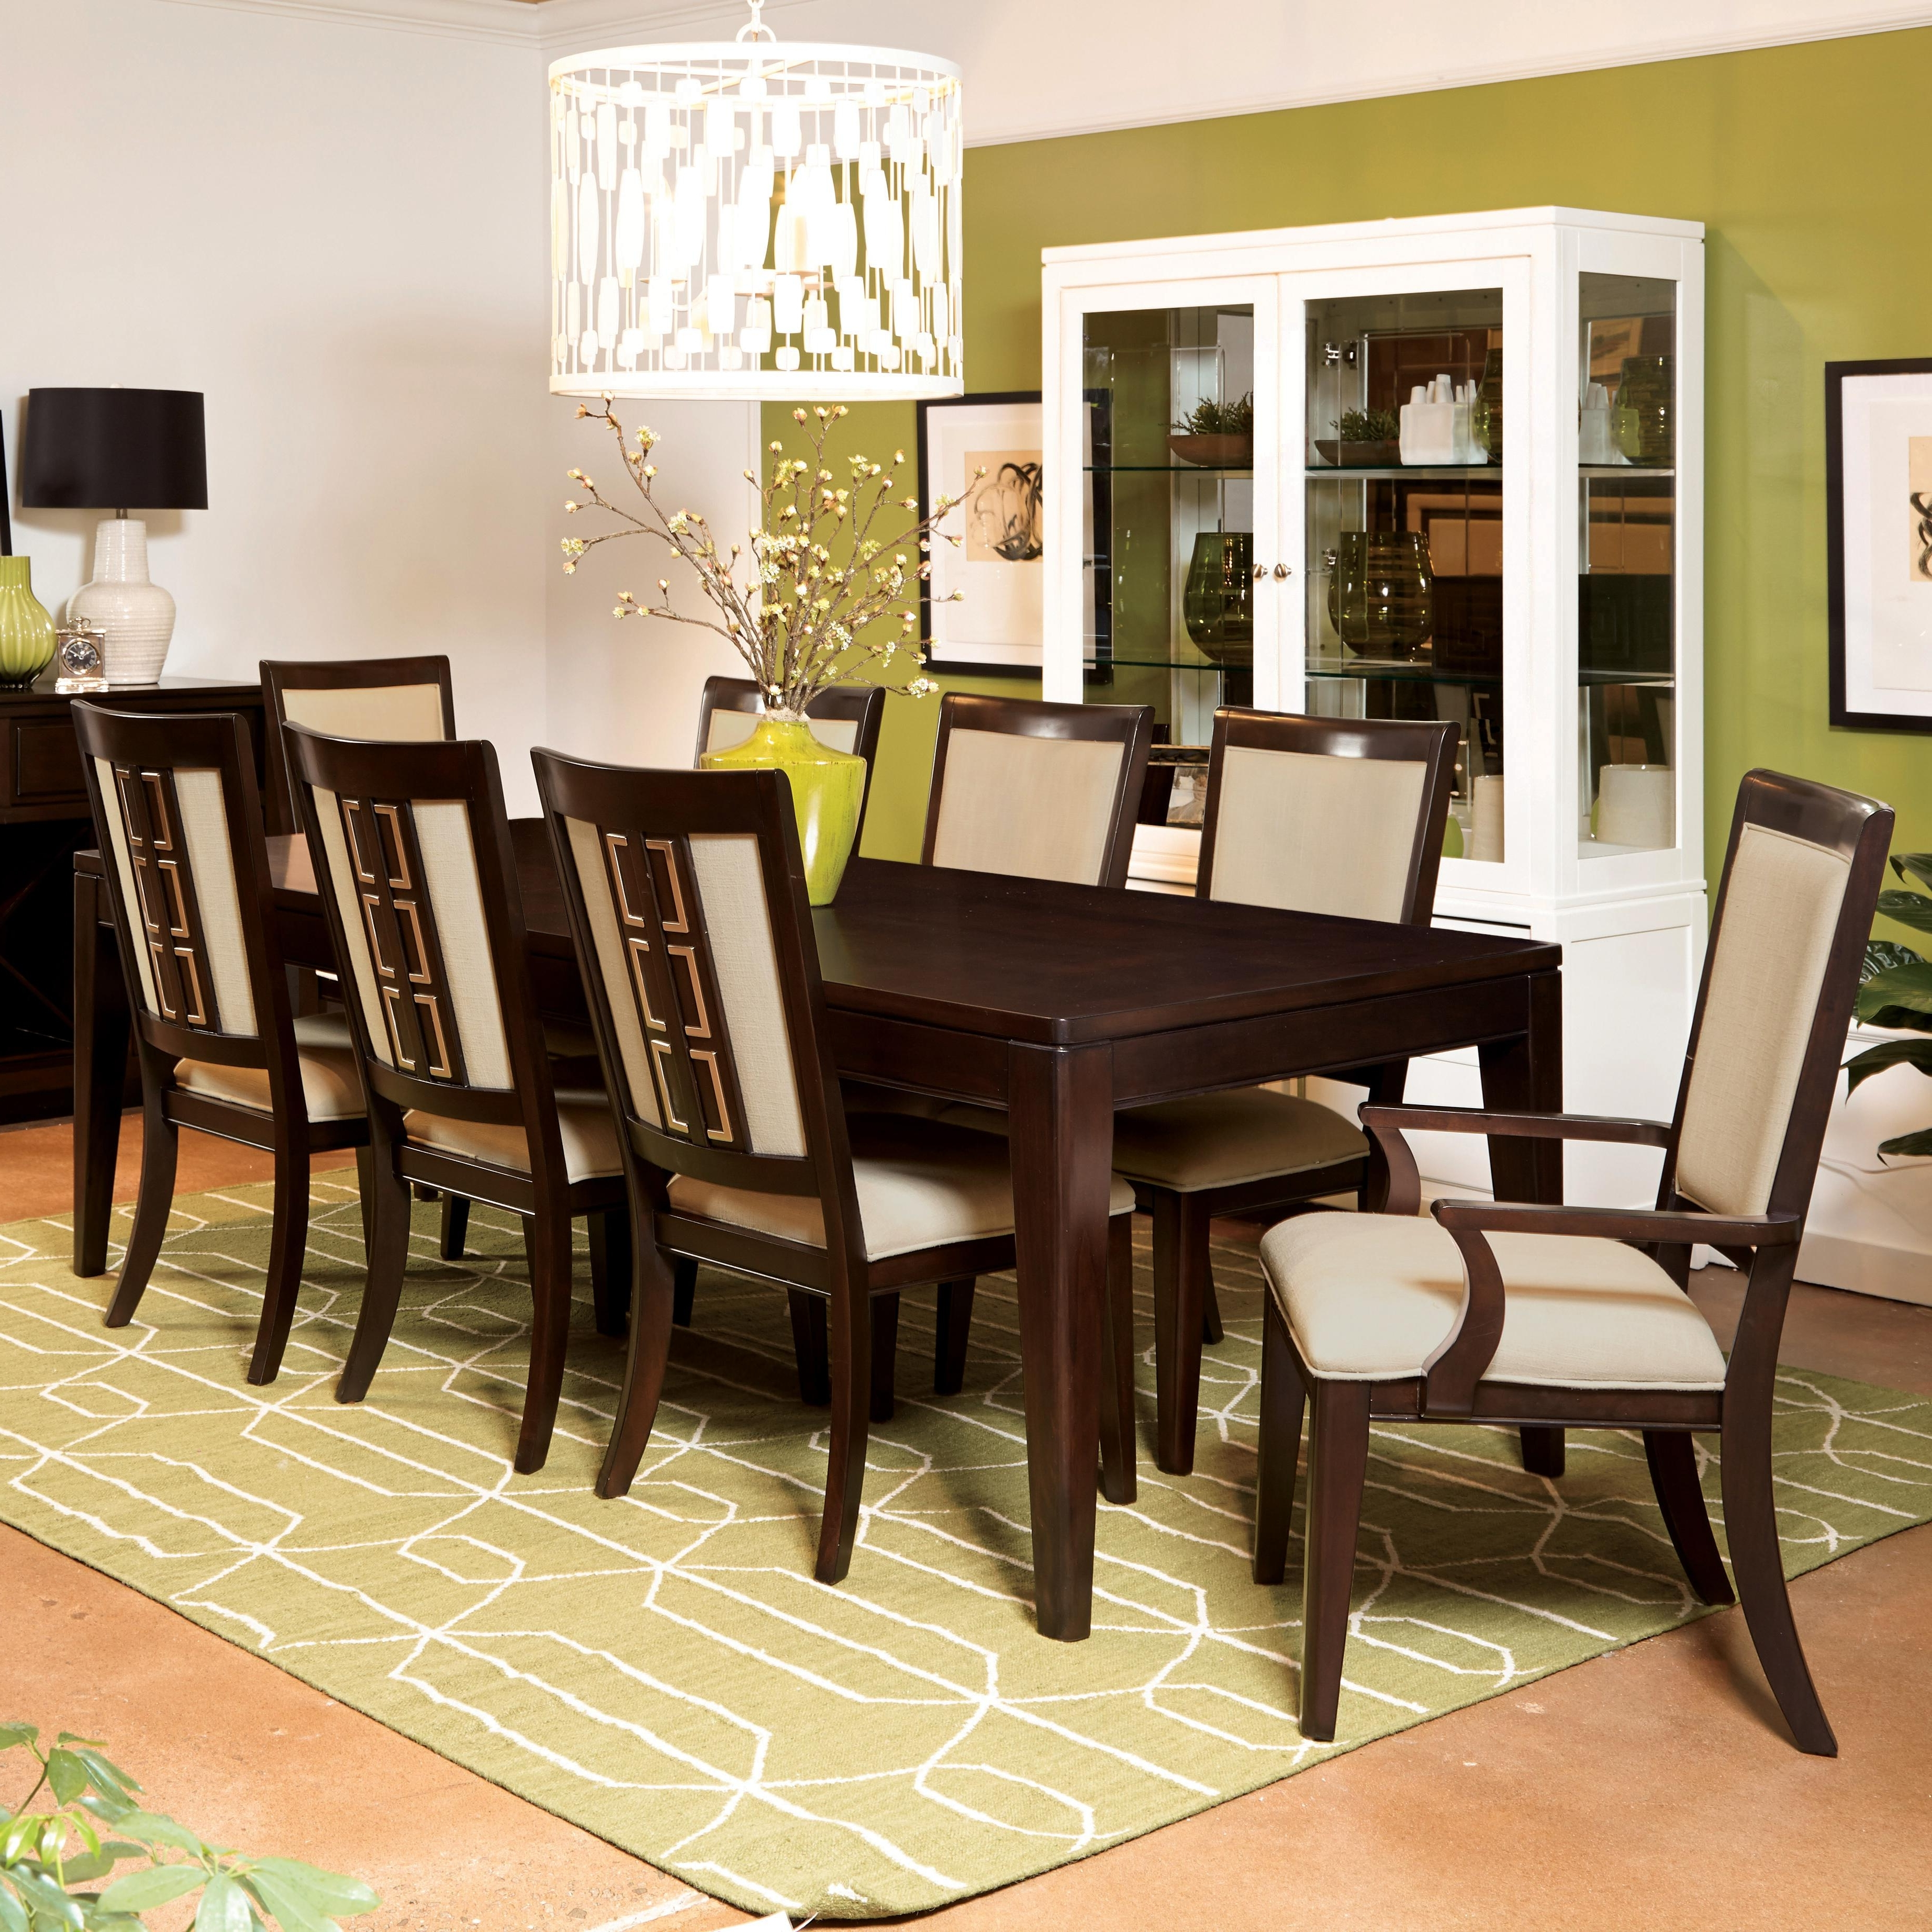 Famous Contemporary Dining Room Tables And Chairs Within Samuel Lawrence Brighton 9 Piece Contemporary Dining Table Set (View 17 of 25)